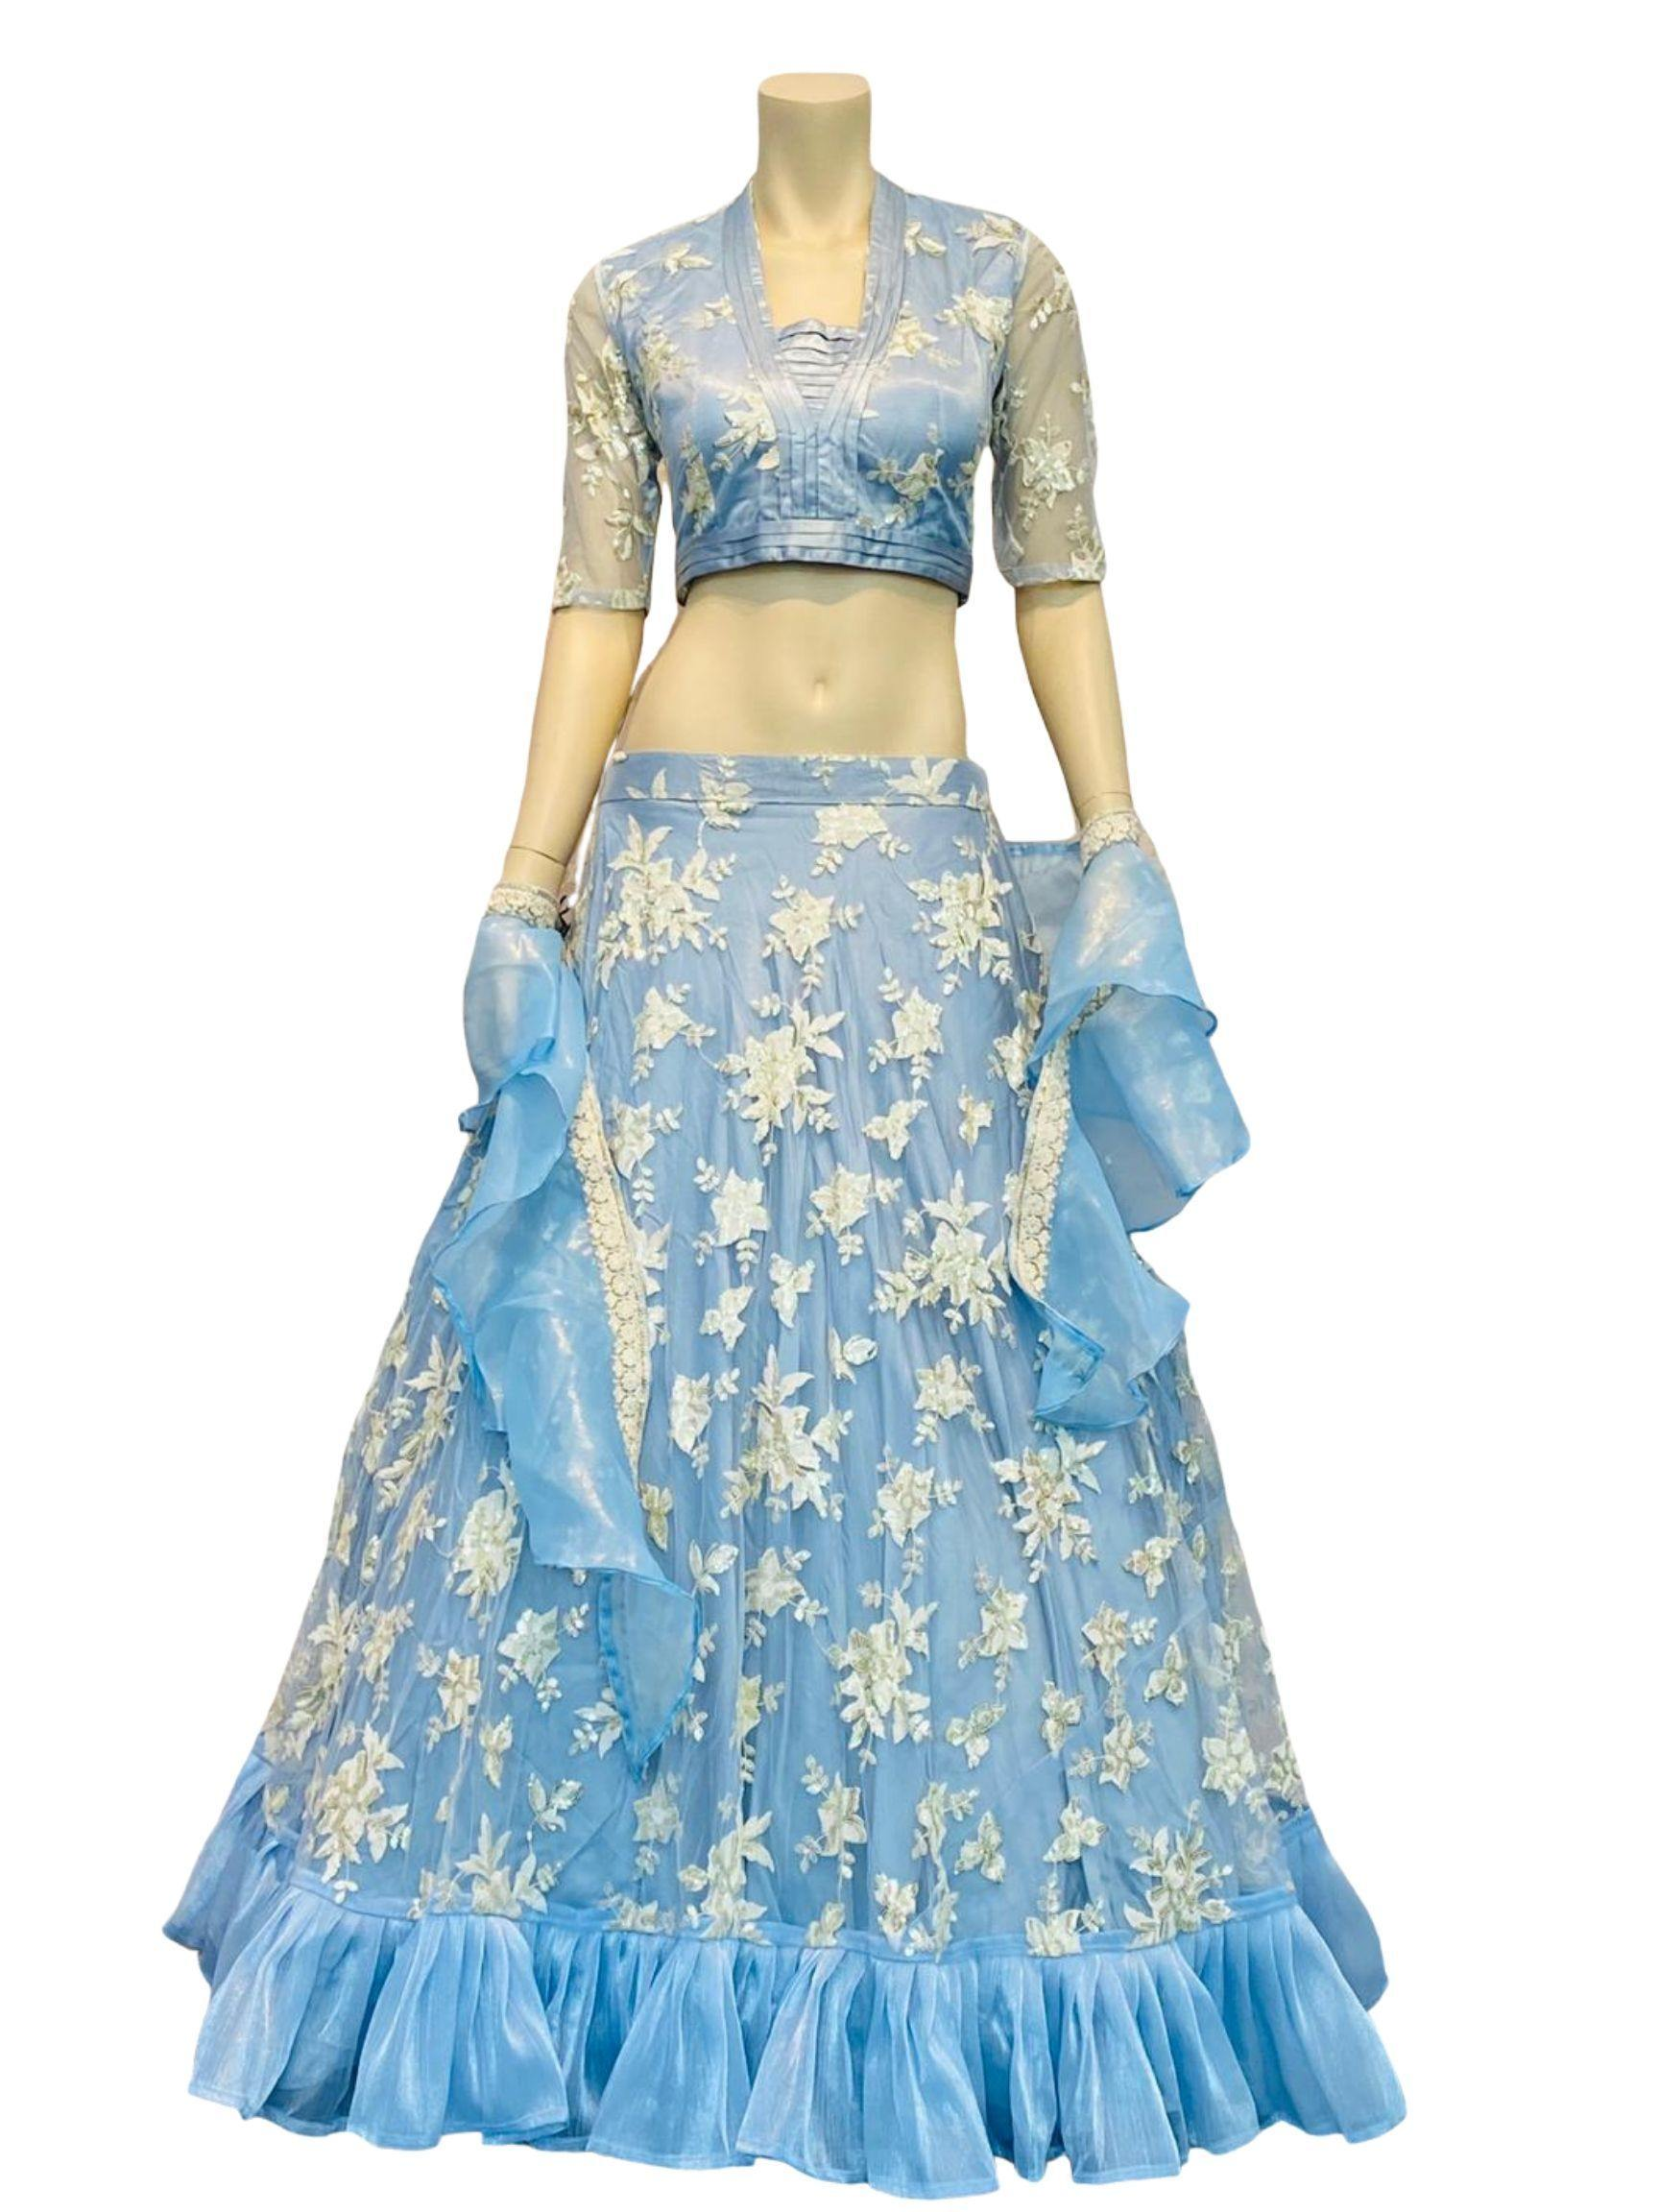 Light blue lehenga with ruffles